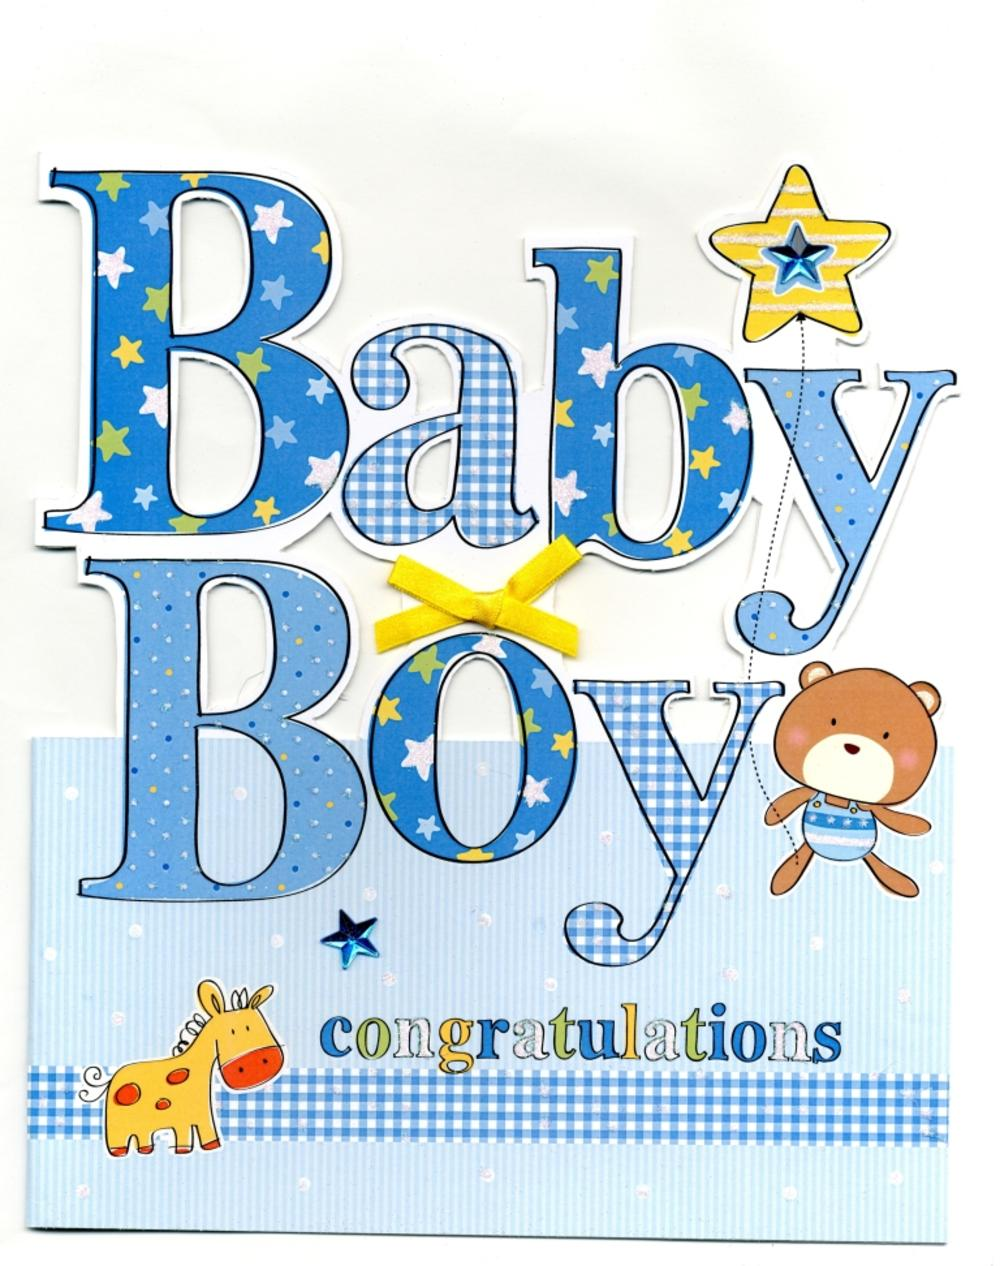 Large new baby boy congratulations greeting card cards love kates large new baby boy congratulations greeting card kristyandbryce Images